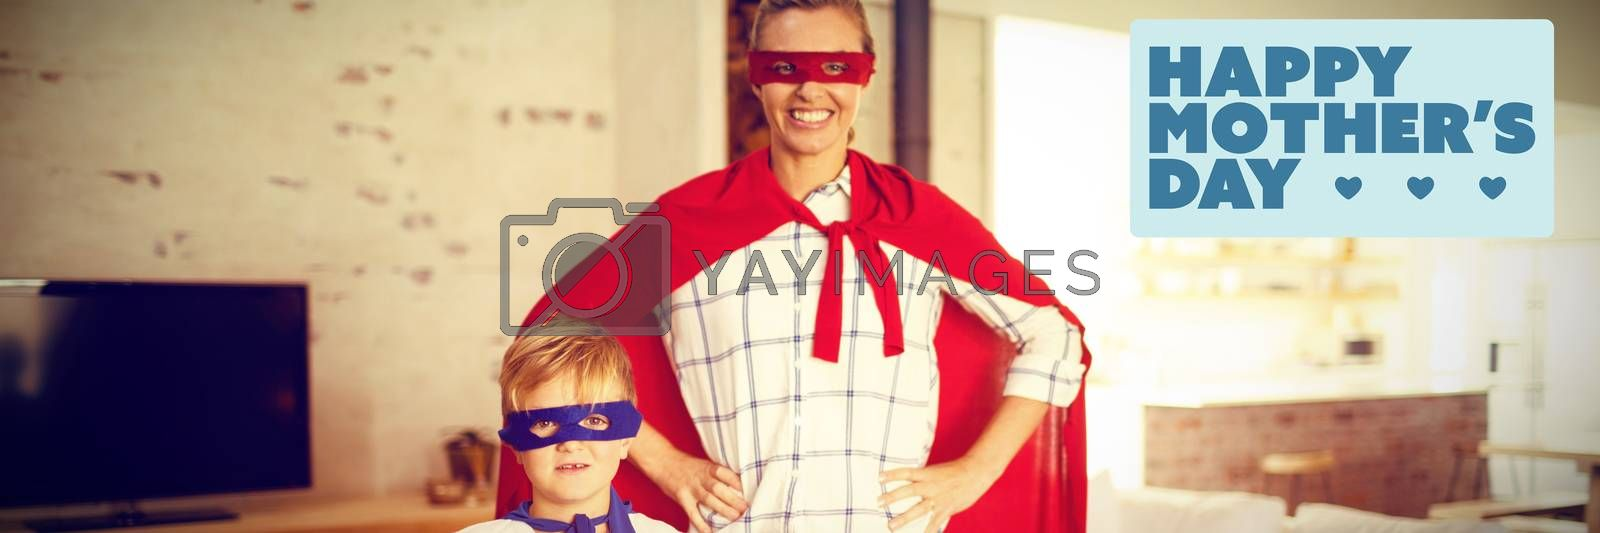 mothers day greeting against mother and son playing super heroes